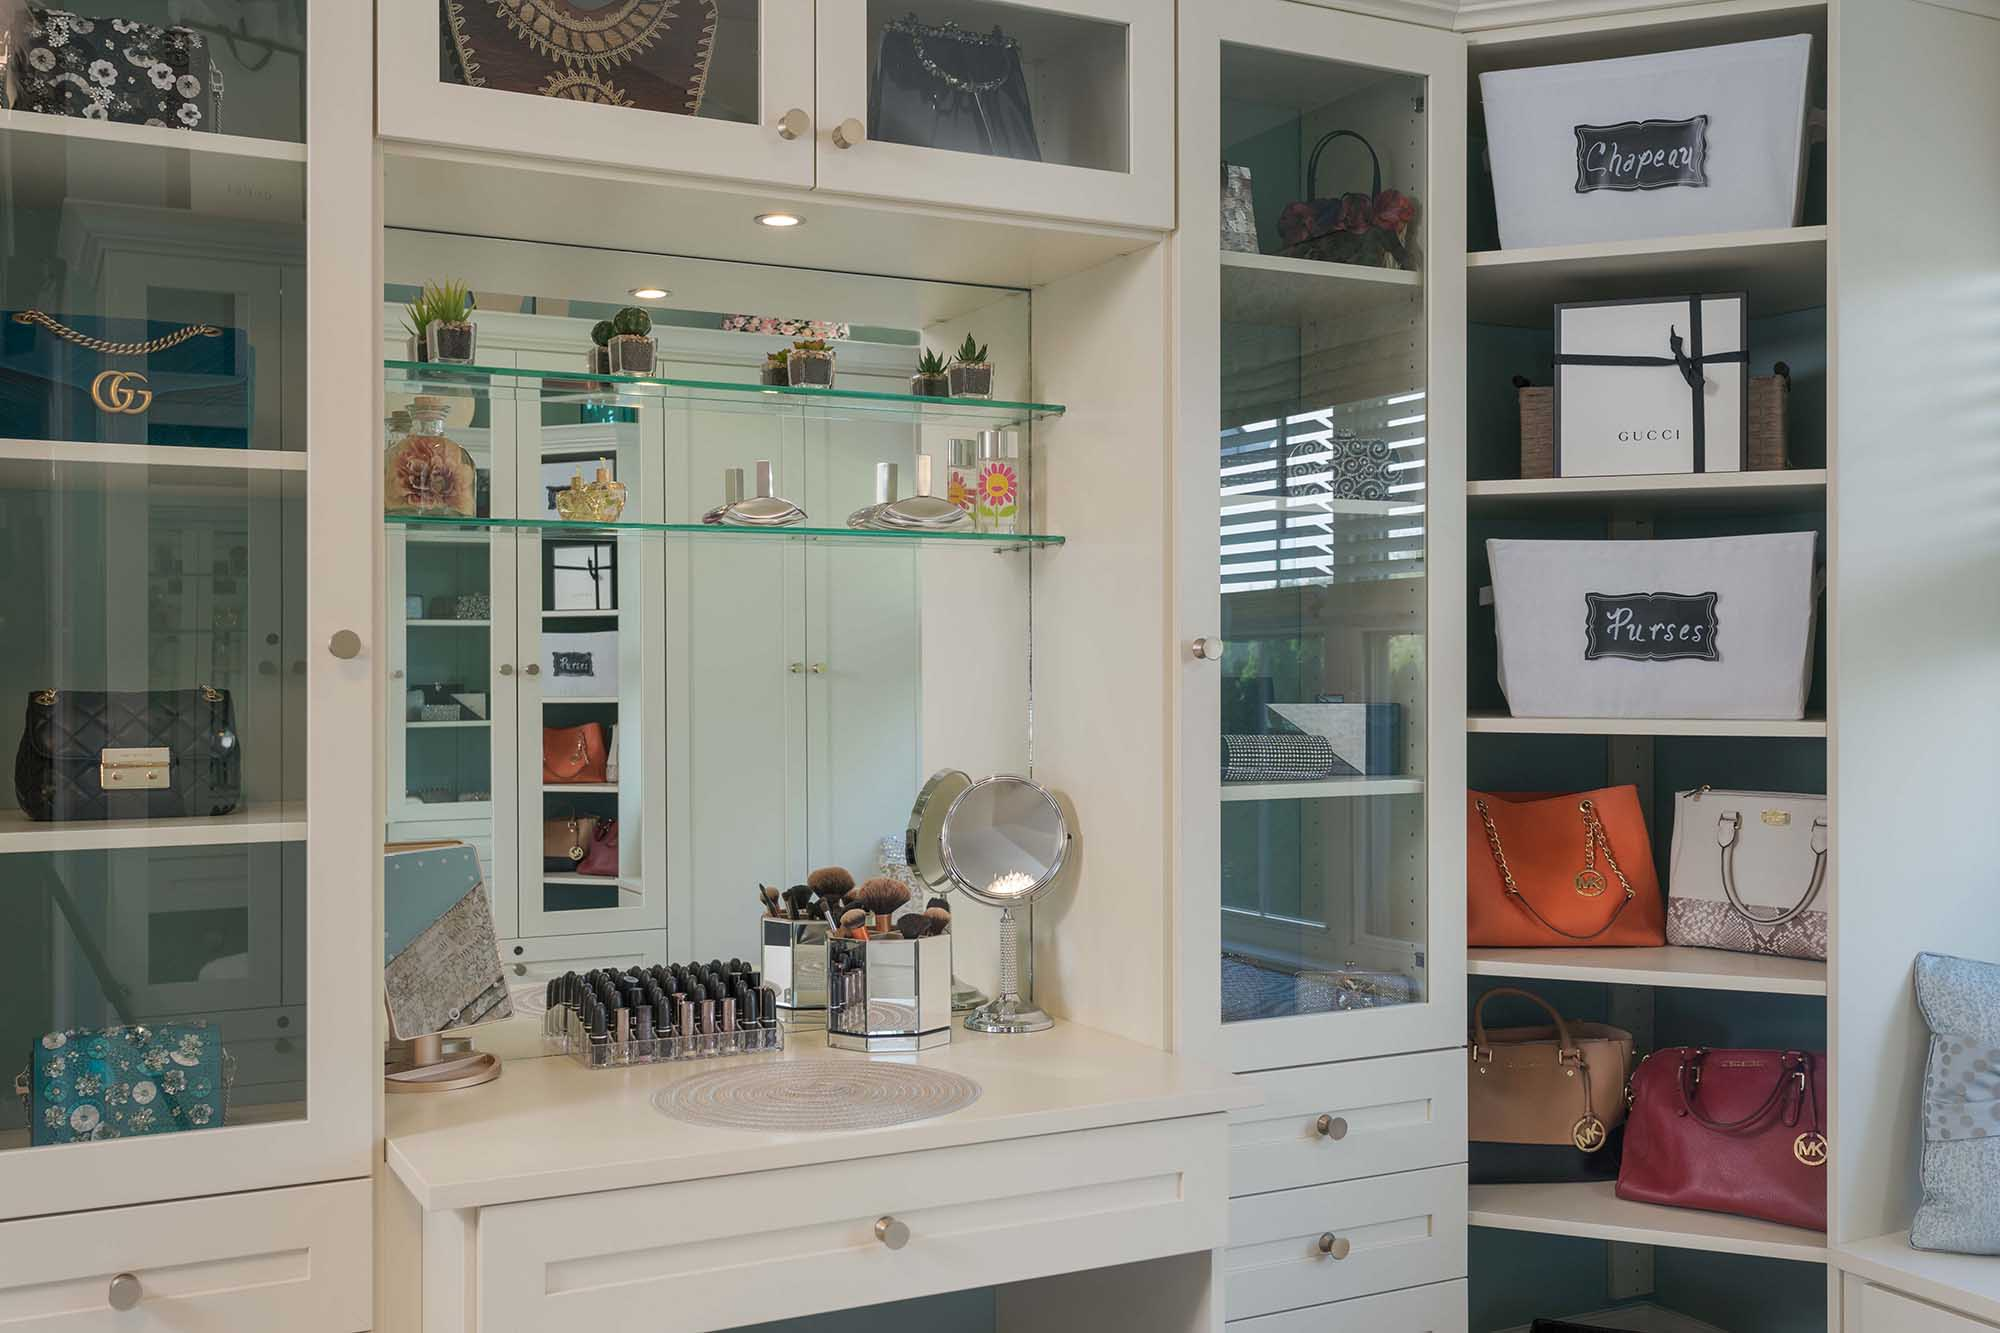 Walk-in closet and sitting room organized